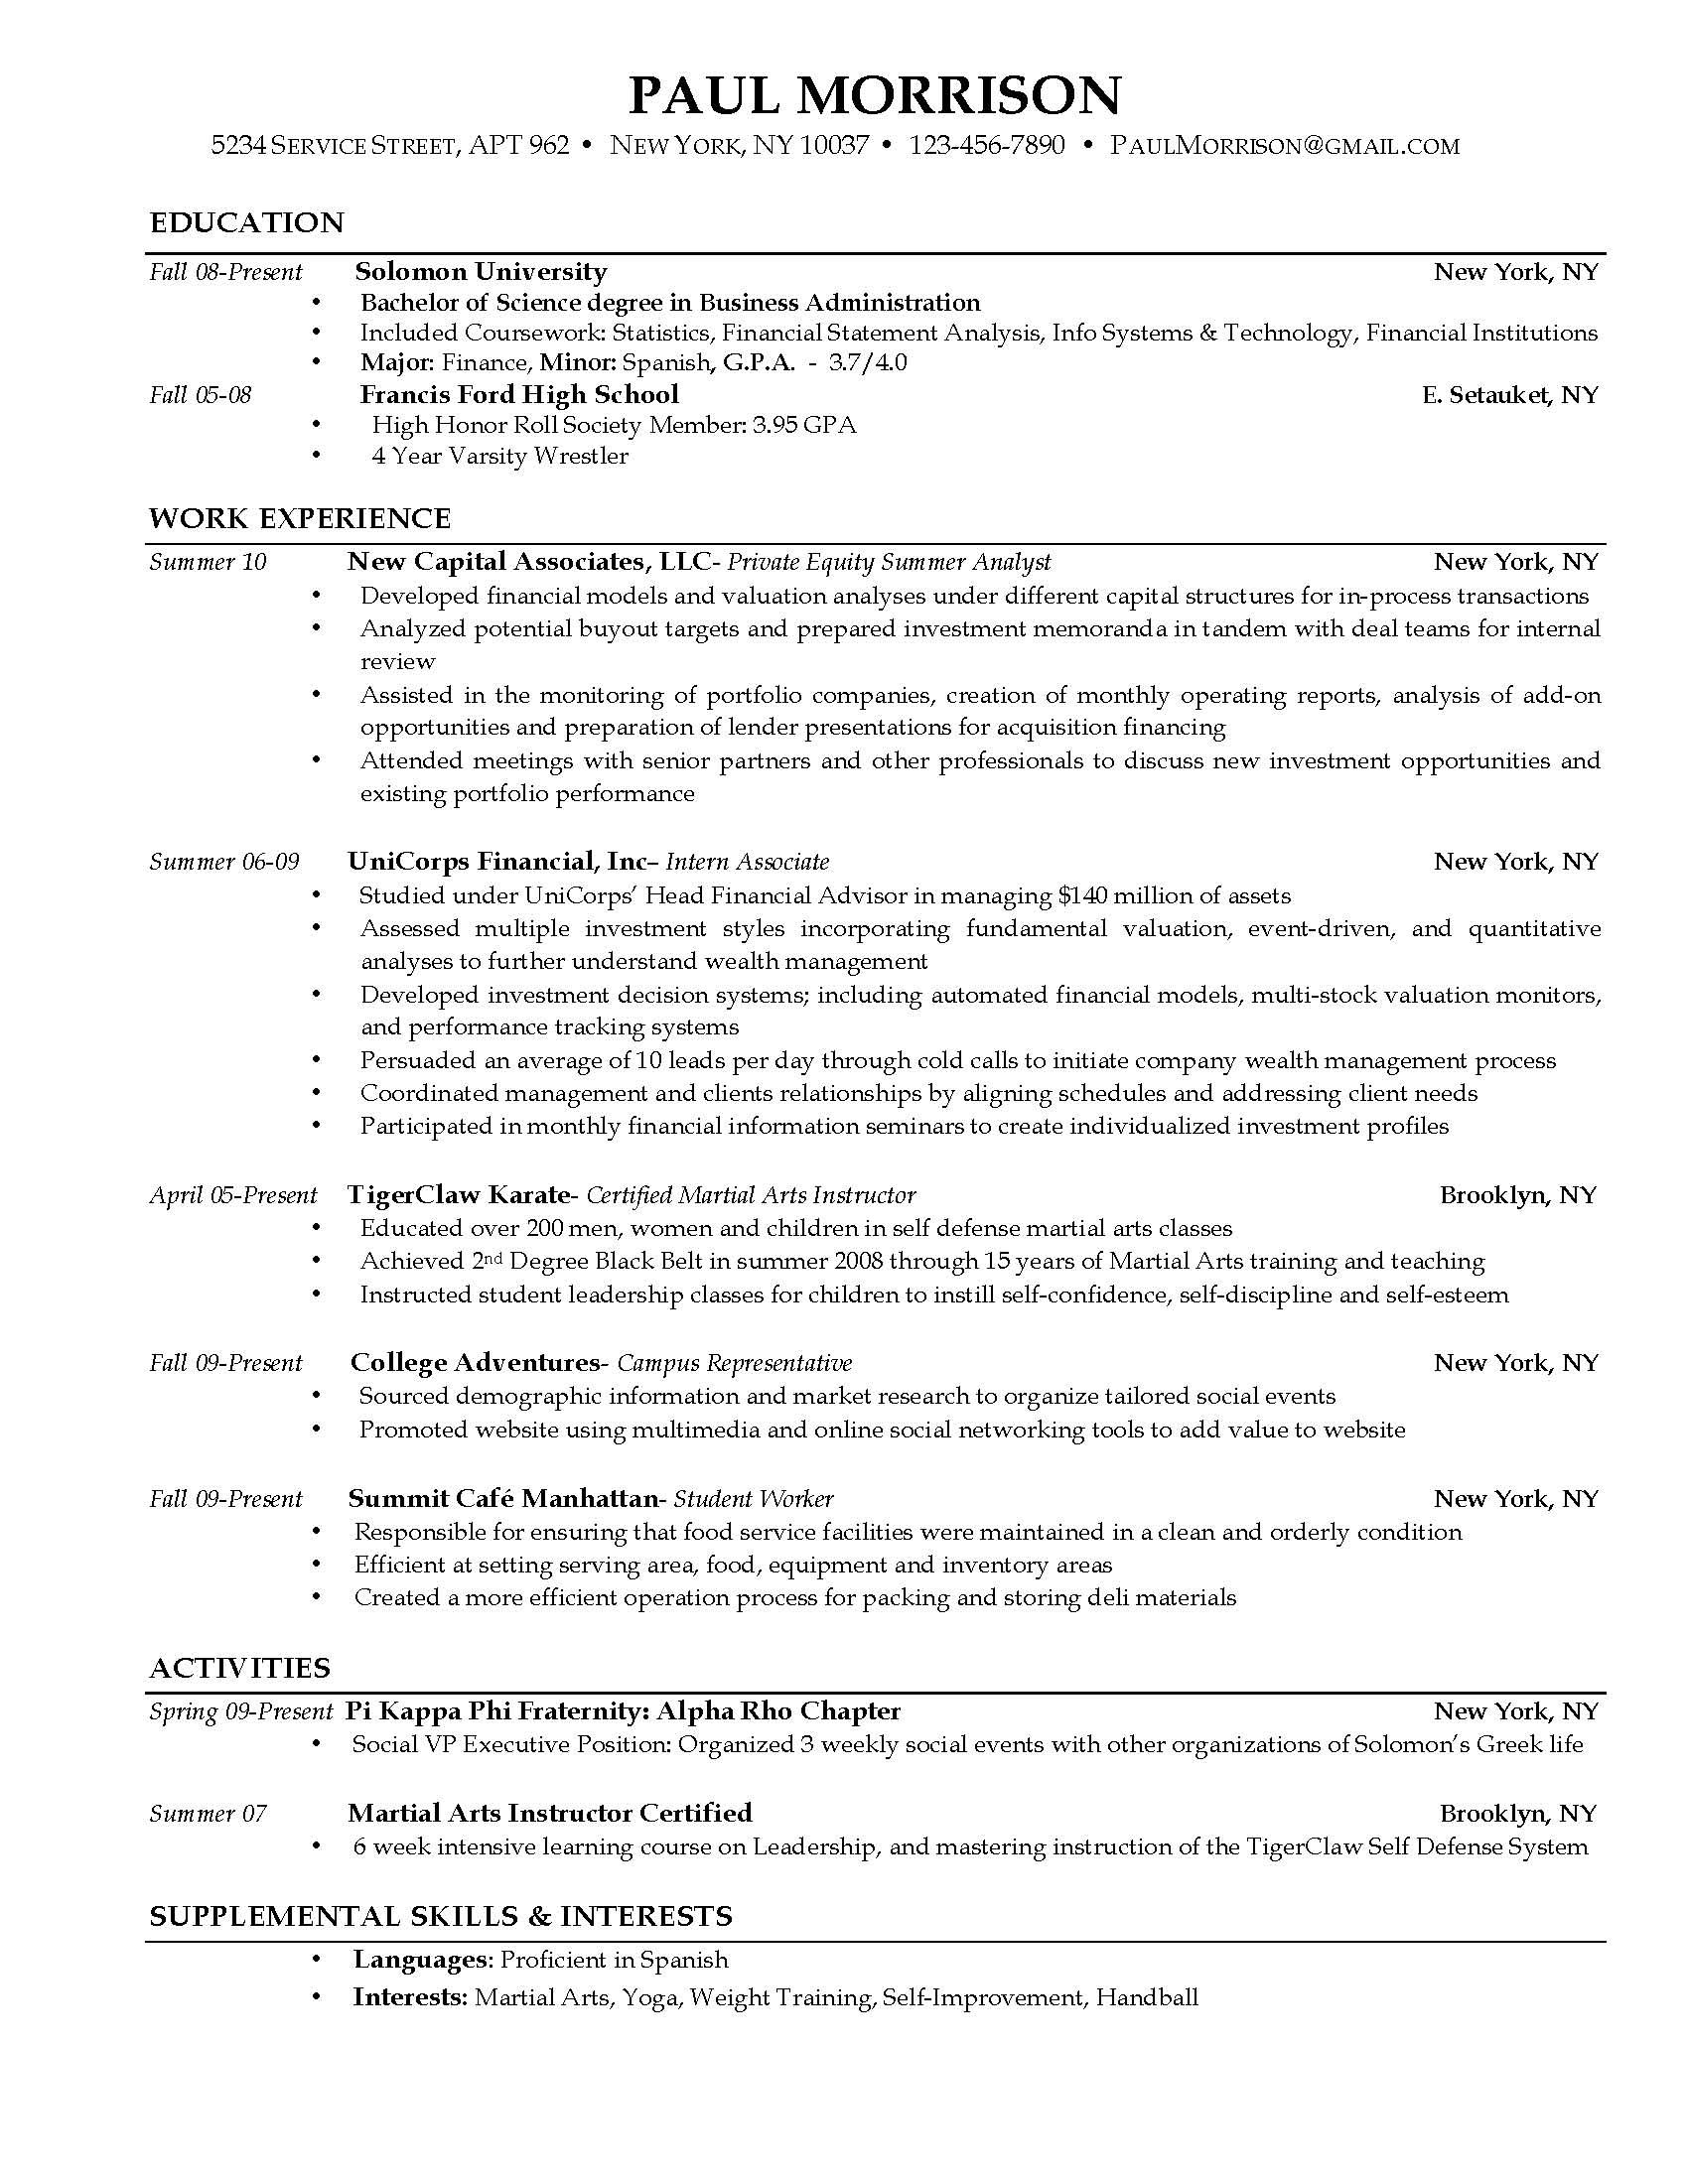 College Resume Template Custom Jethwear Resume Templates For College Students Word How To Write